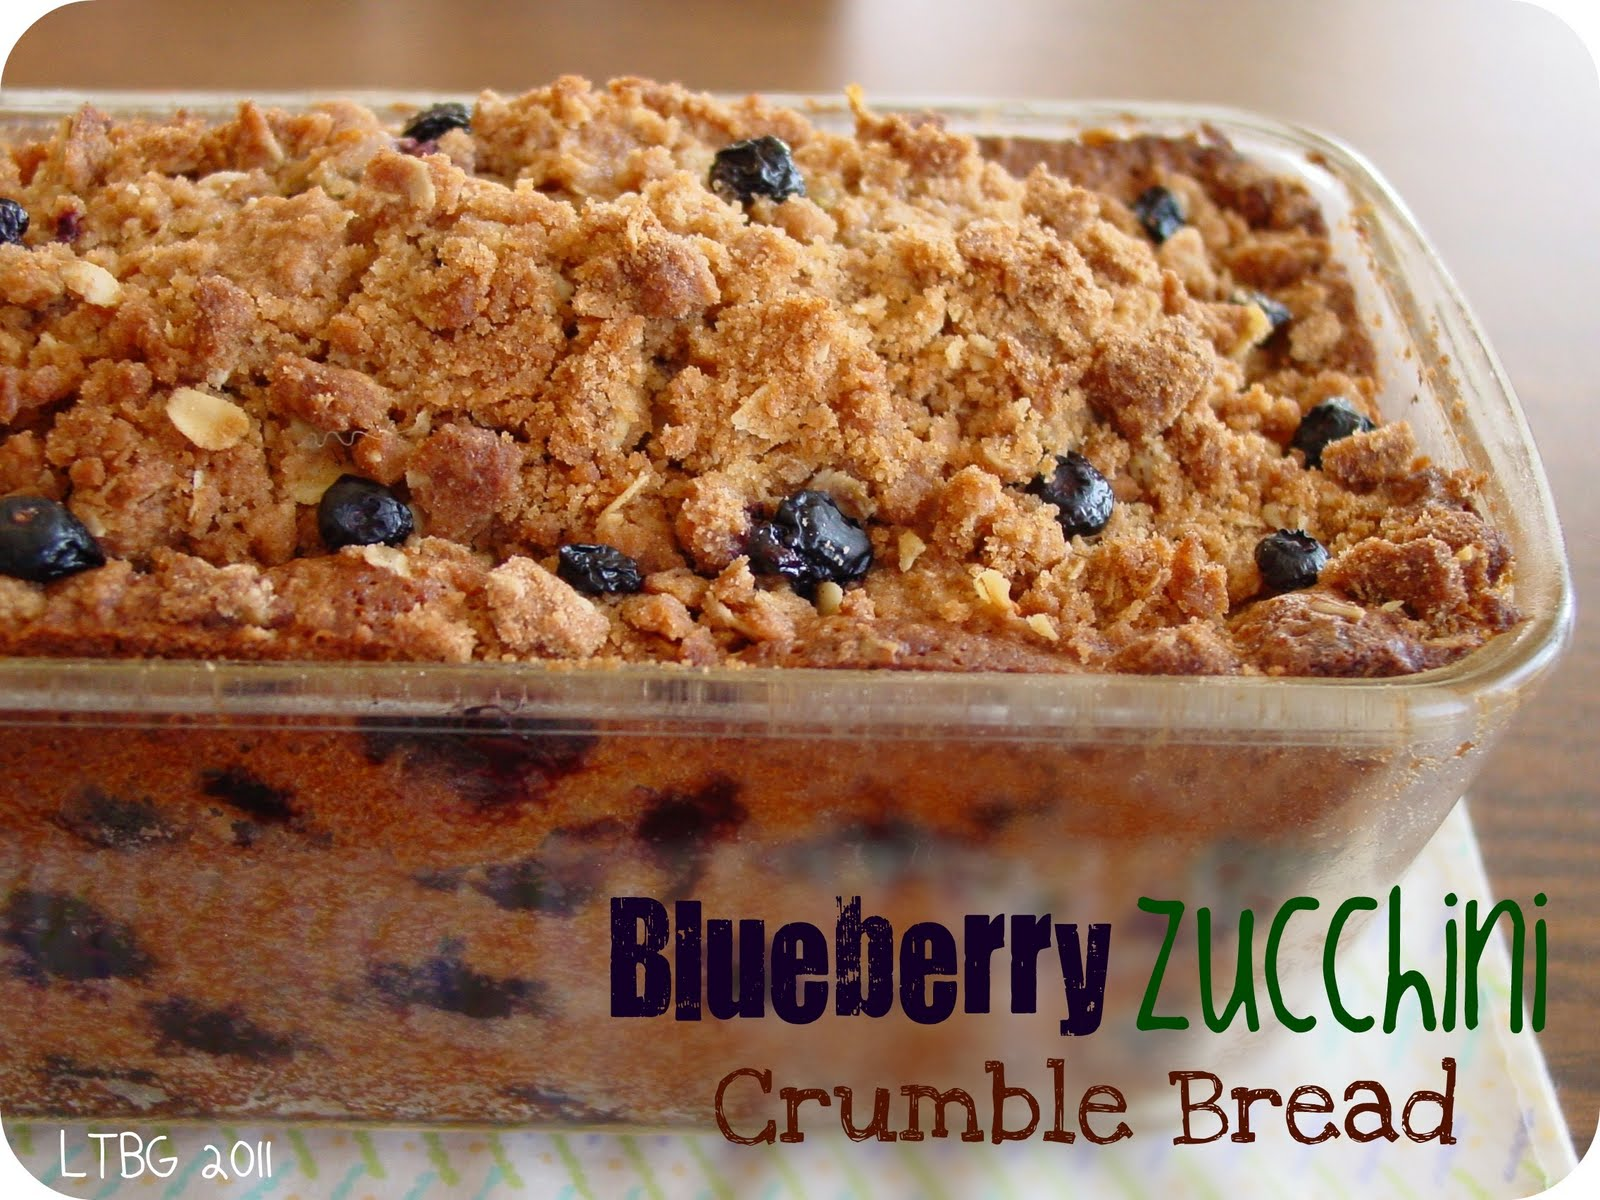 Blueberry Zucchini Crumble Bread